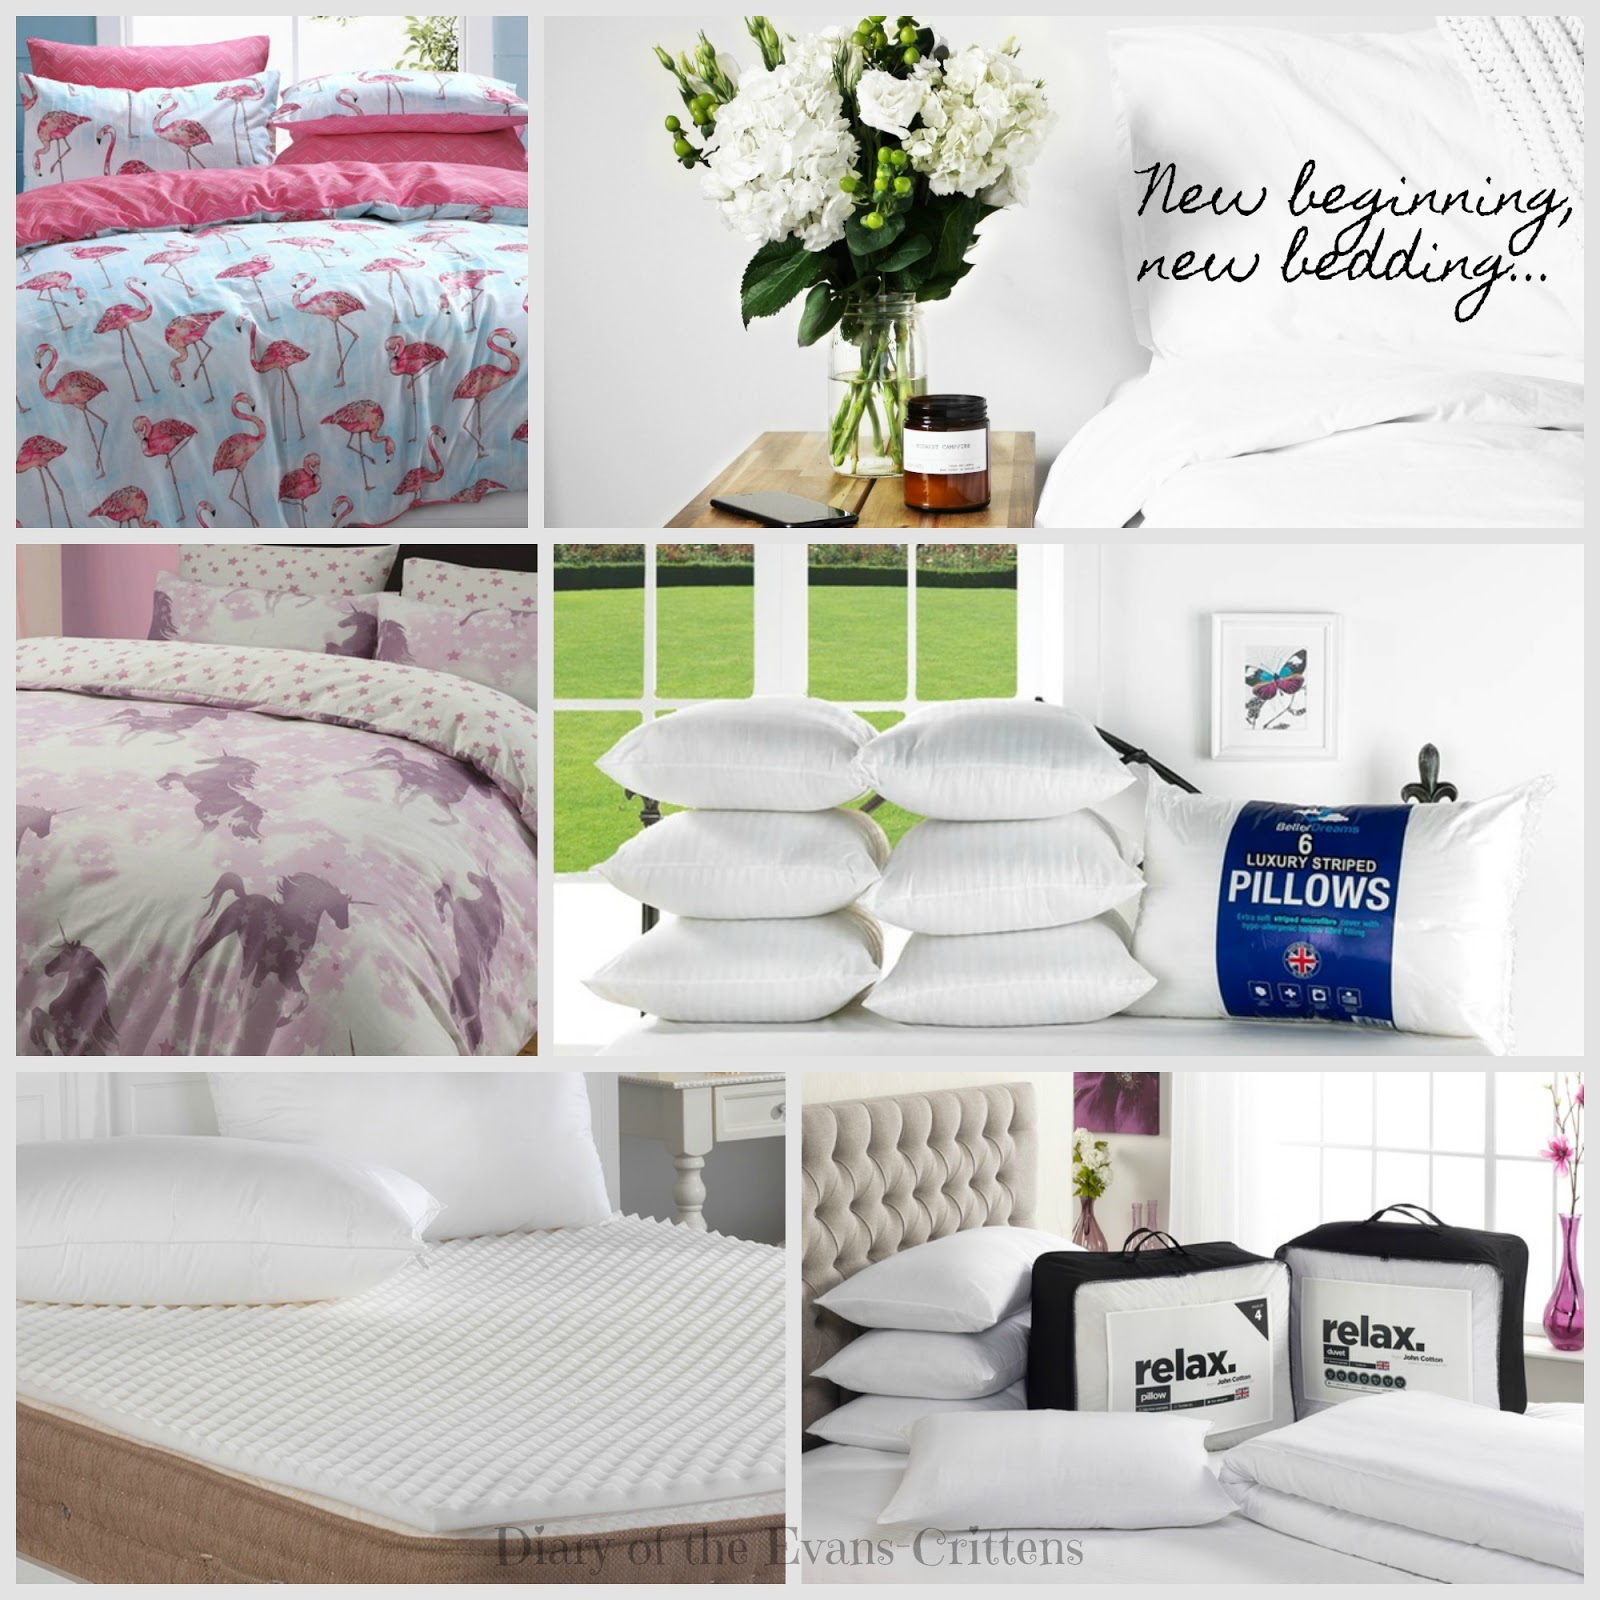 , New Beginnings, New Bedding (For Less with Groupon)